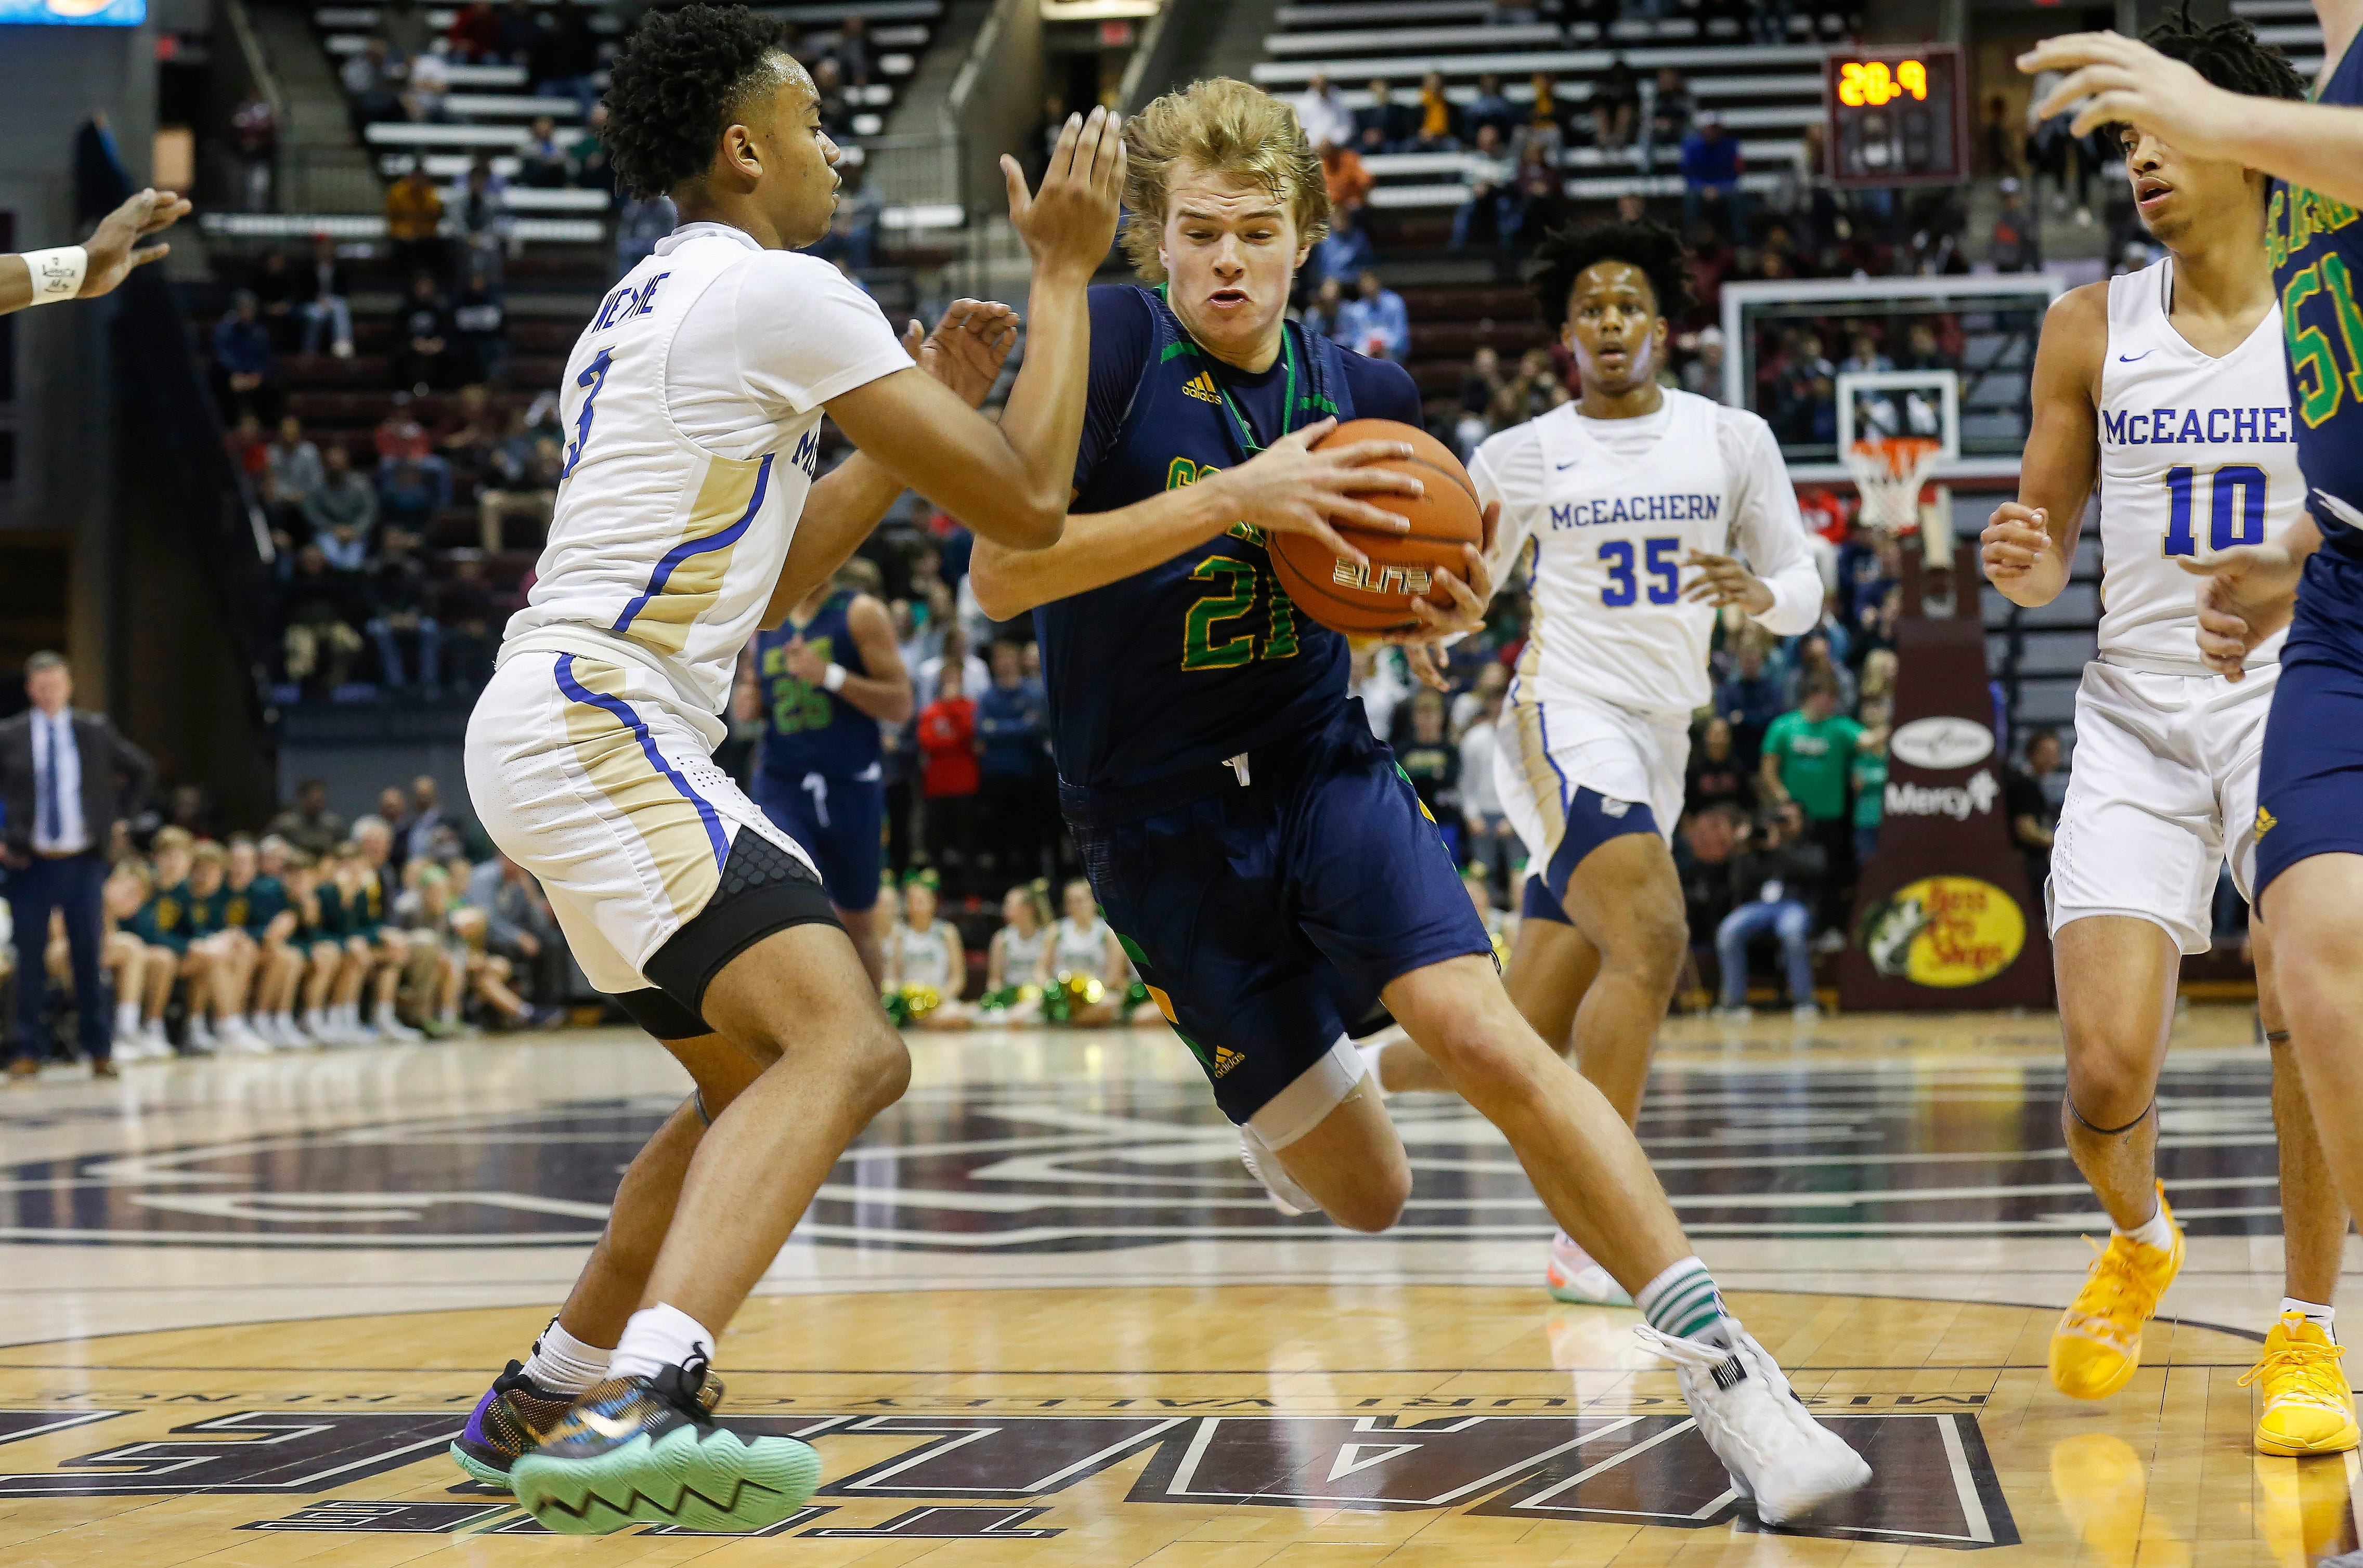 Charlie O'Reilly, of Springfield Catholic, drives to the net the Irish's  game against McEachern at the Bass Pro Shops Tournament of Champions at JQH Arena on Thursday, Jan. 17, 2019.